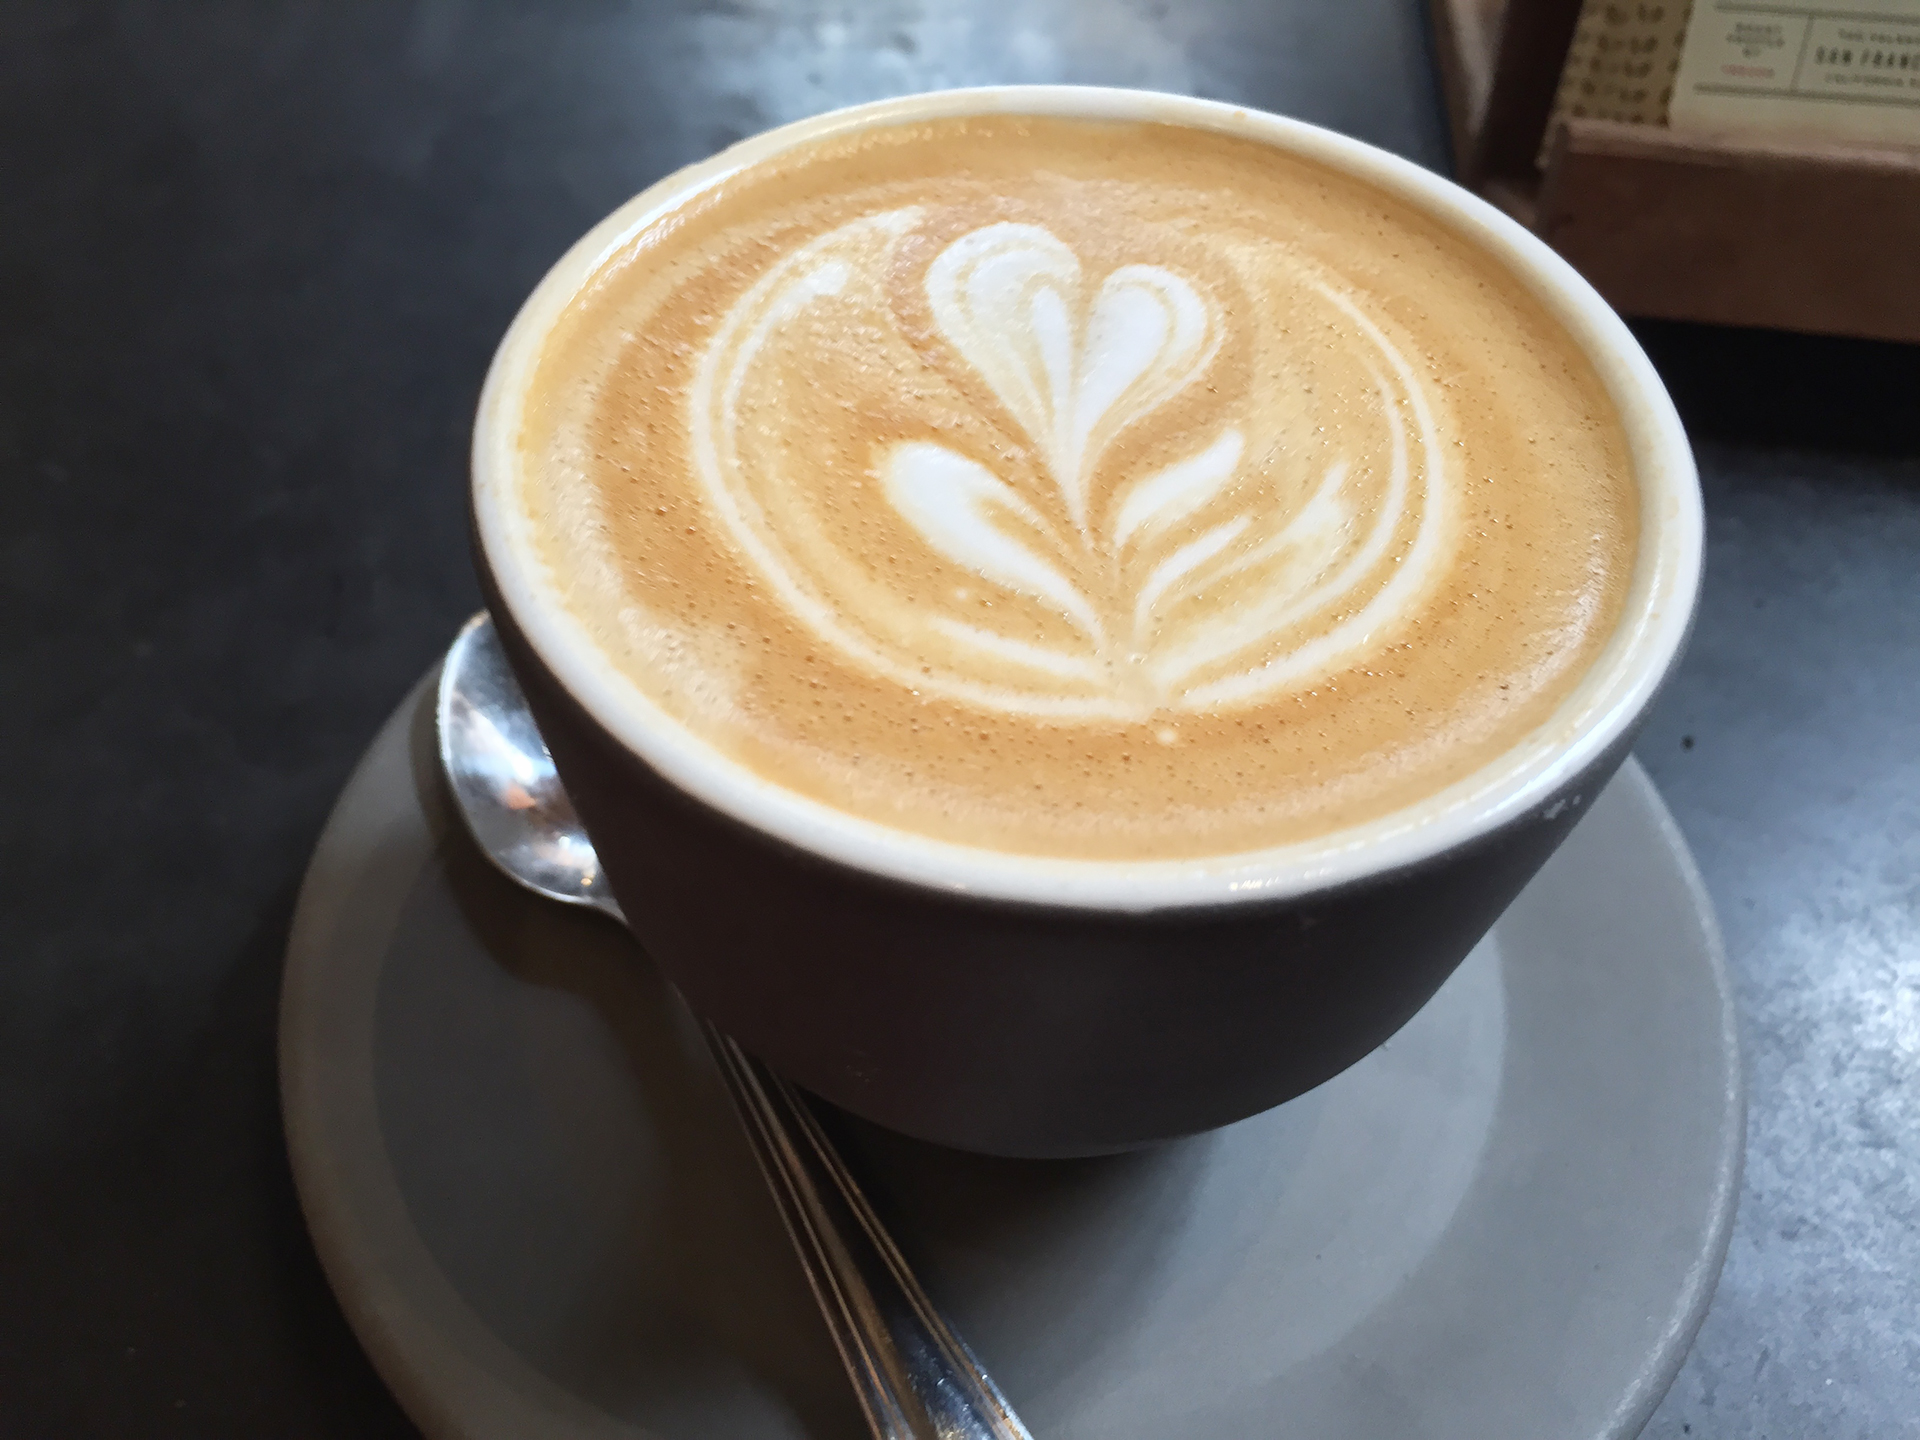 Four Barrel cappuccino